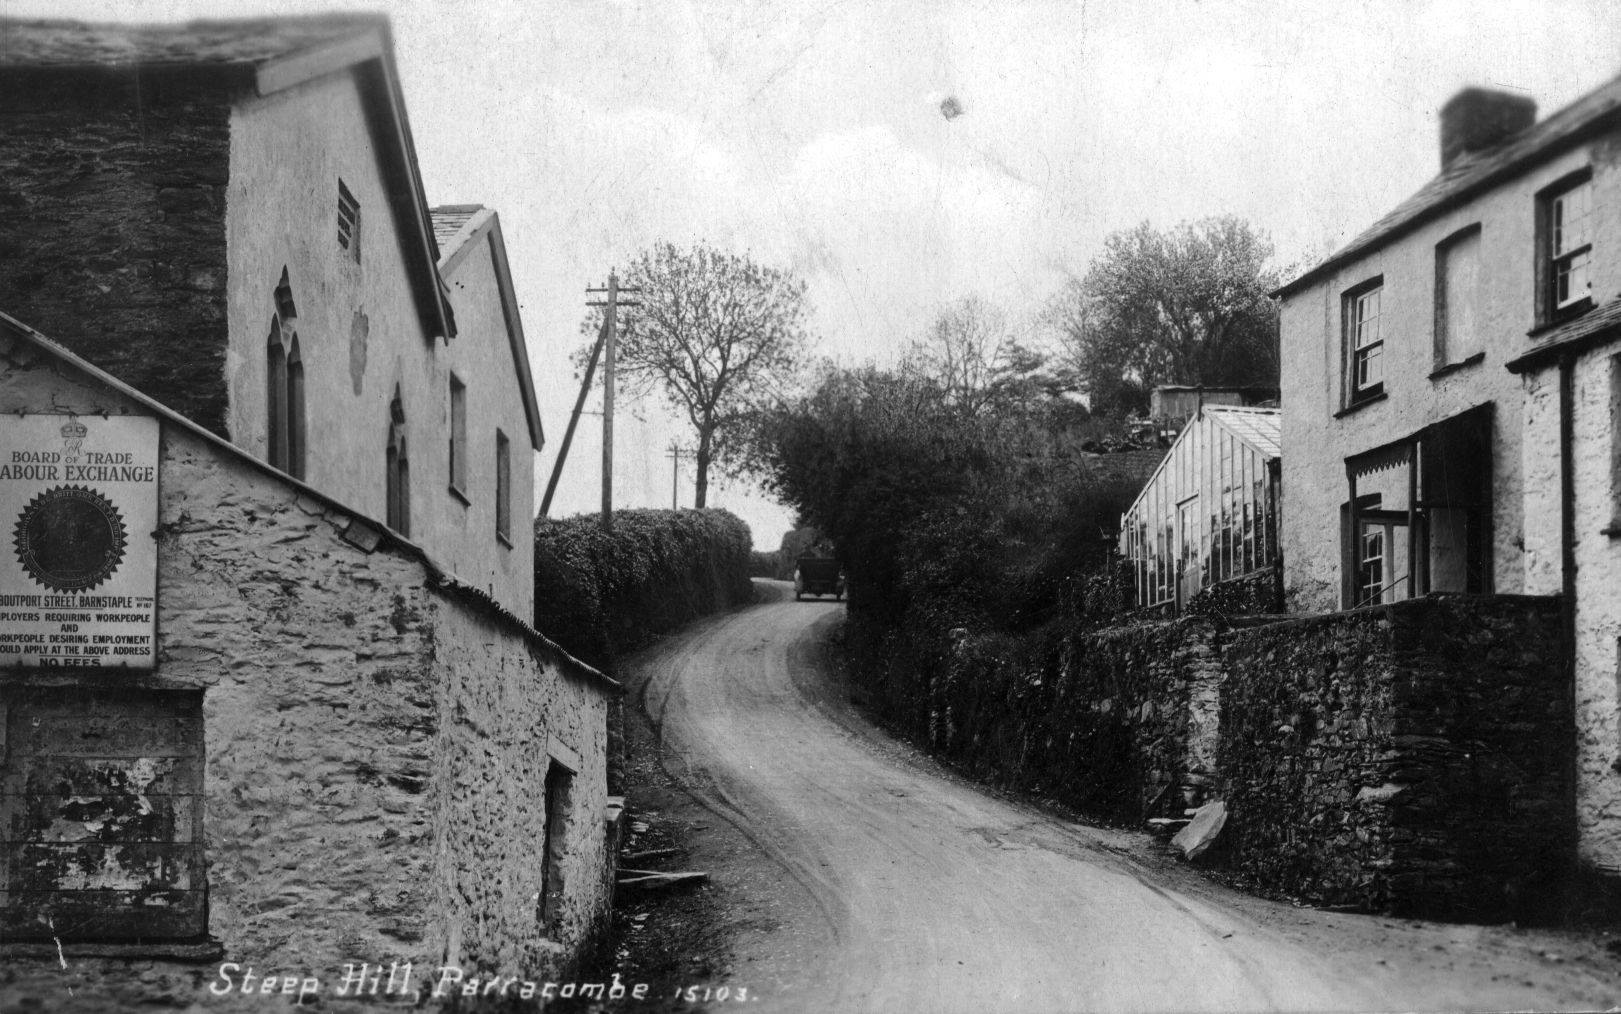 Ley's Lane, Parracombe, Devon - kind permission David Blackmore